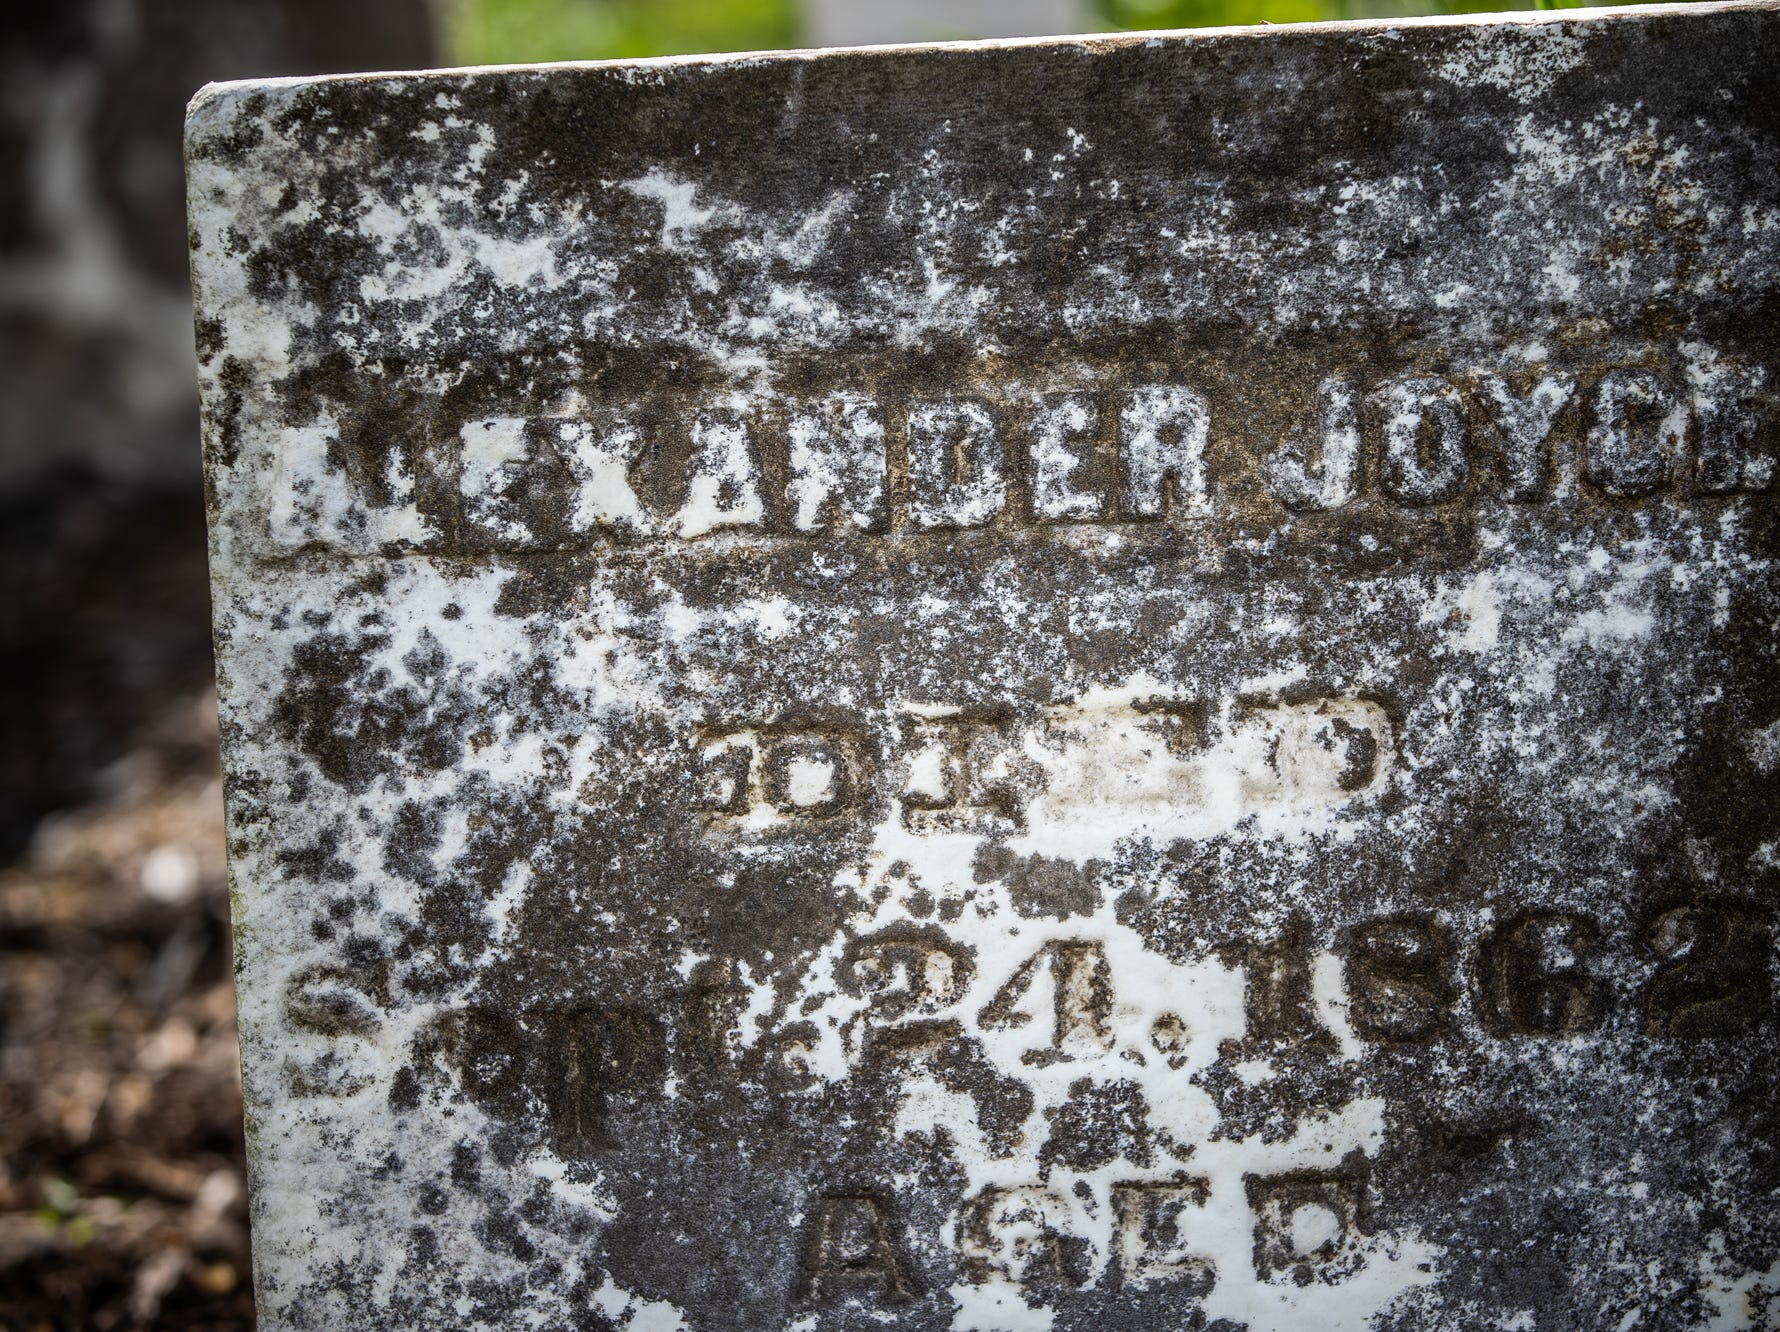 The grave of Alexander Joyce II on Saturday, May 11, 2019.